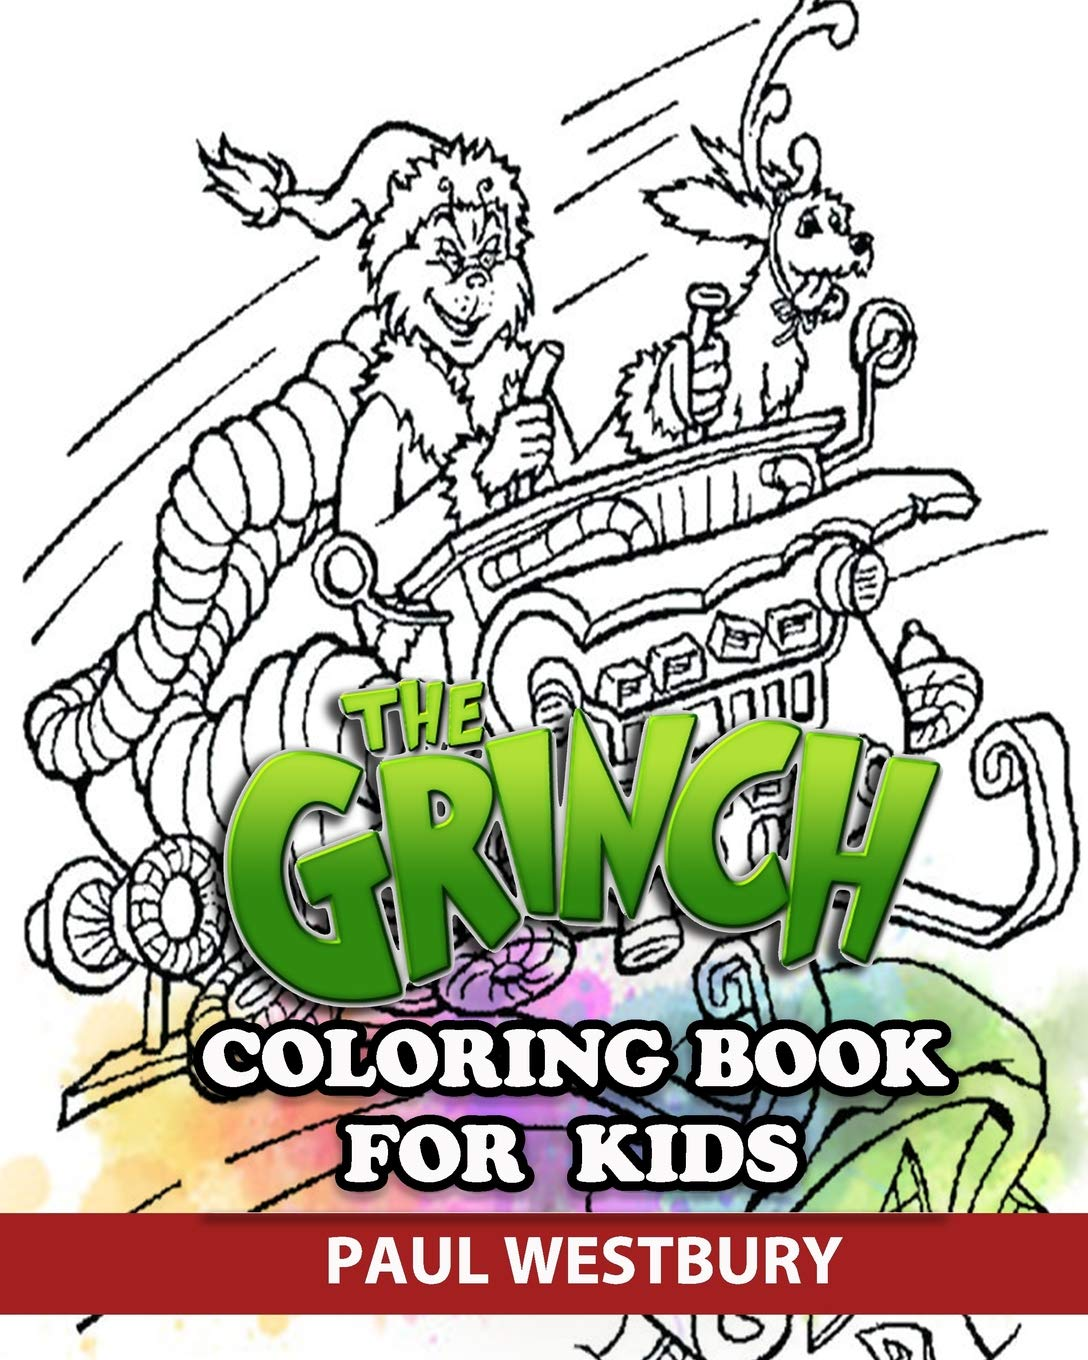 - The Grinch Coloring Book For Kids: Coloring All Your Favorite The